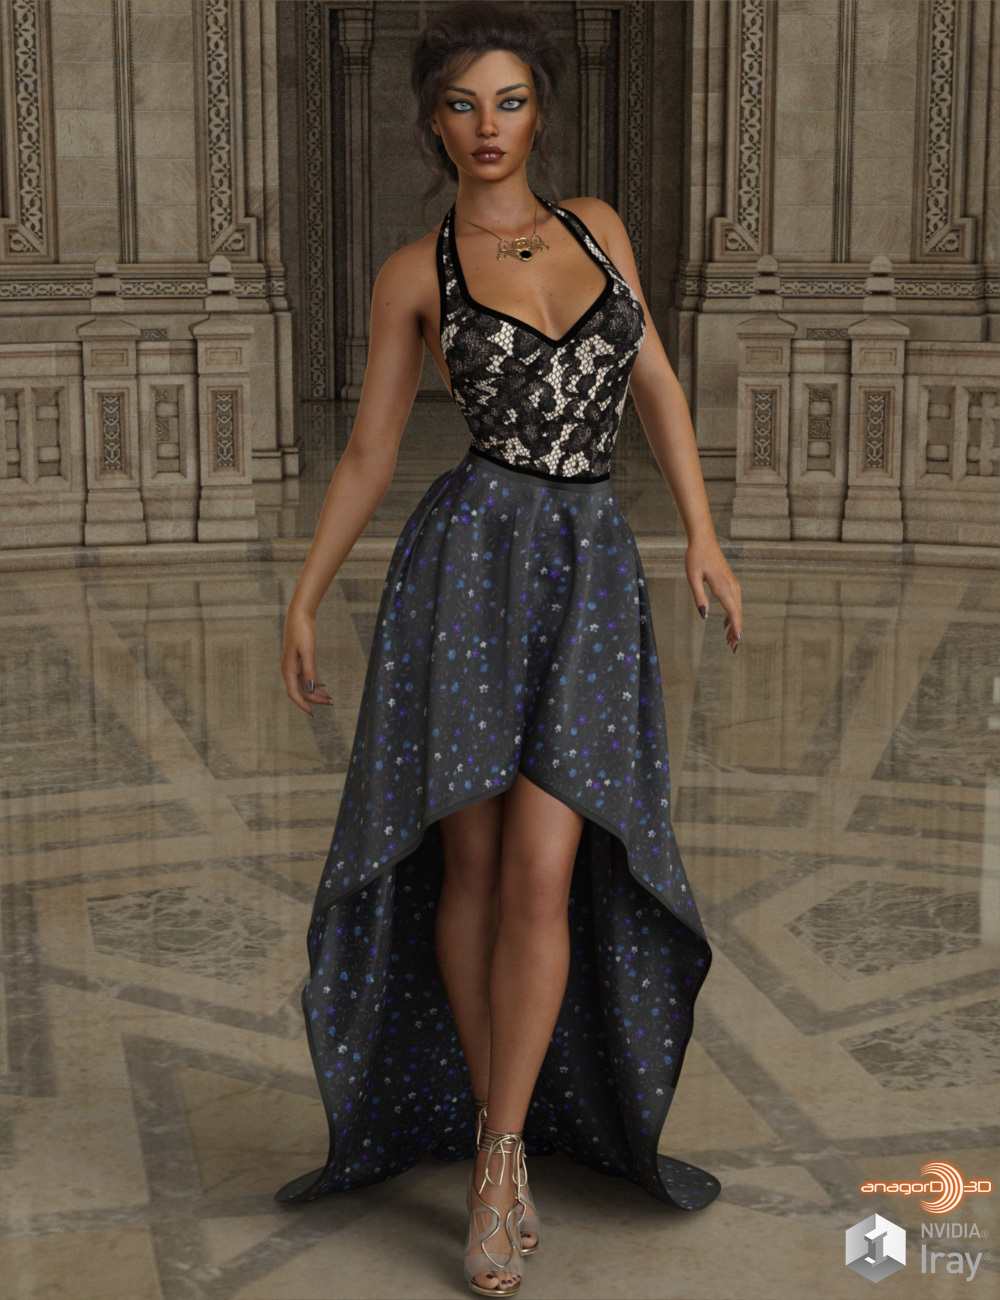 VERSUS - dForce Exalted Dress for Genesis 8 Females by Anagord